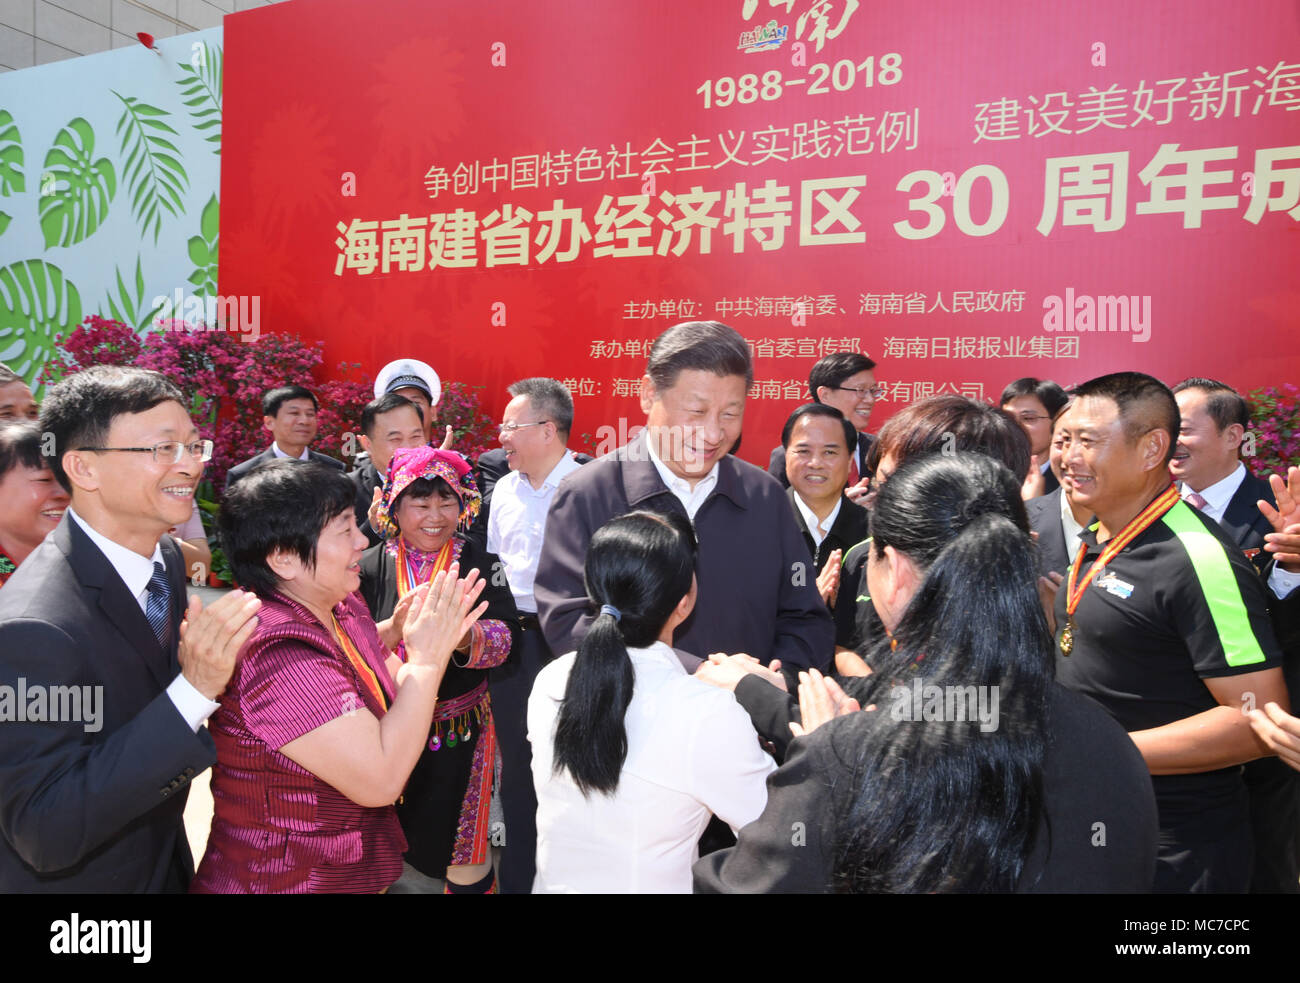 Haikou, China's Hainan Province. 13th Apr, 2018. Chinese President Xi Jinping, also general secretary of the Communist Party of China Central Committee and chairman of the Central Military Commission, shakes hands with model workers and representatives of different occupations at a plaza of the Hainan Museum in Haikou, south China's Hainan Province, April 13, 2018. Xi made an inspection tour in Hainan from Wednesday to Friday. Credit: Li Xueren/Xinhua/Alamy Live News Stock Photo